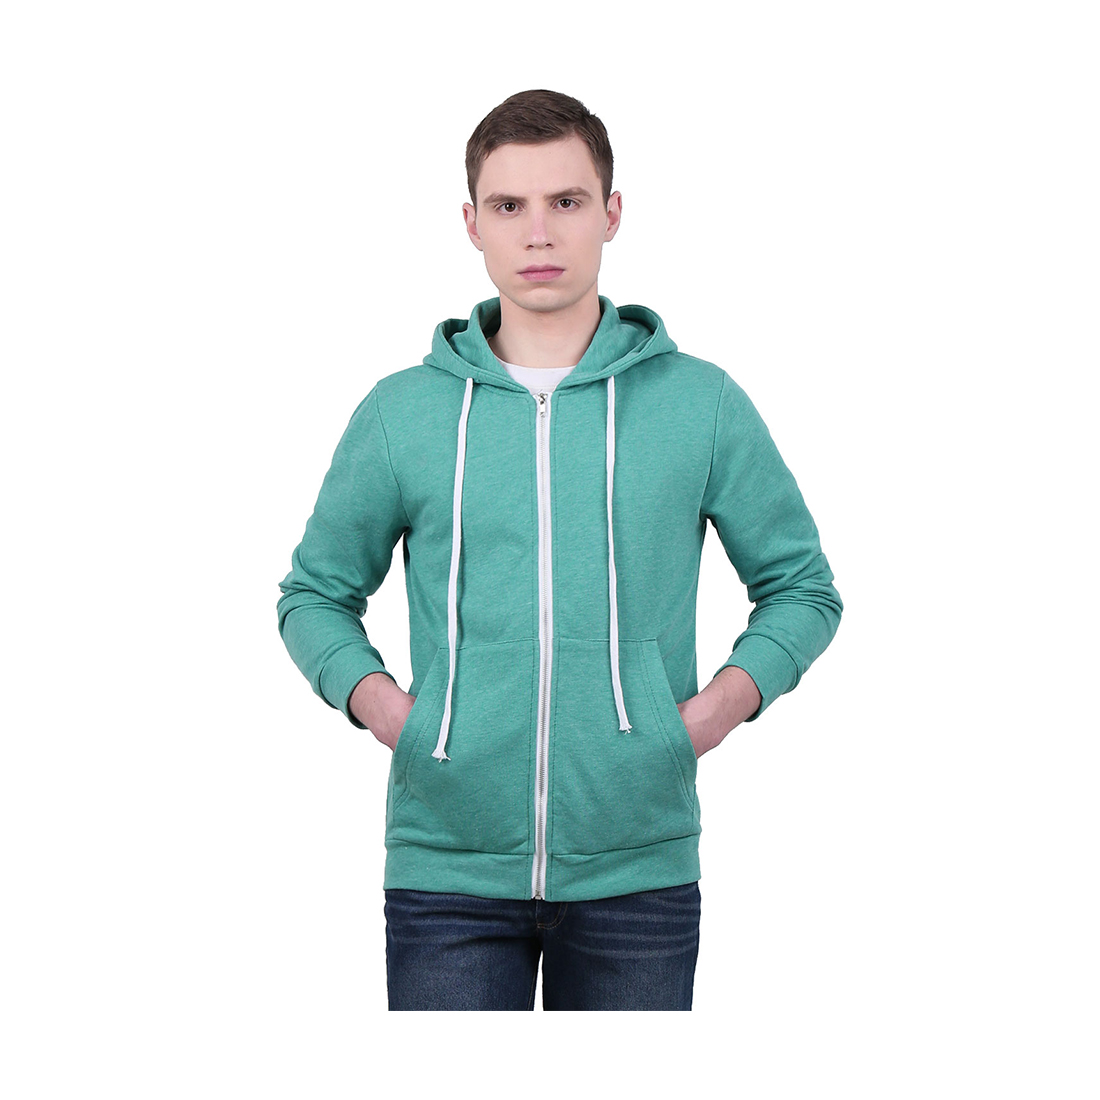 Unique Bargains Men's Long Sleeves Zip Up Kangaroo Pocket Casual Drawstring Hoodie Green (Size L / 42)